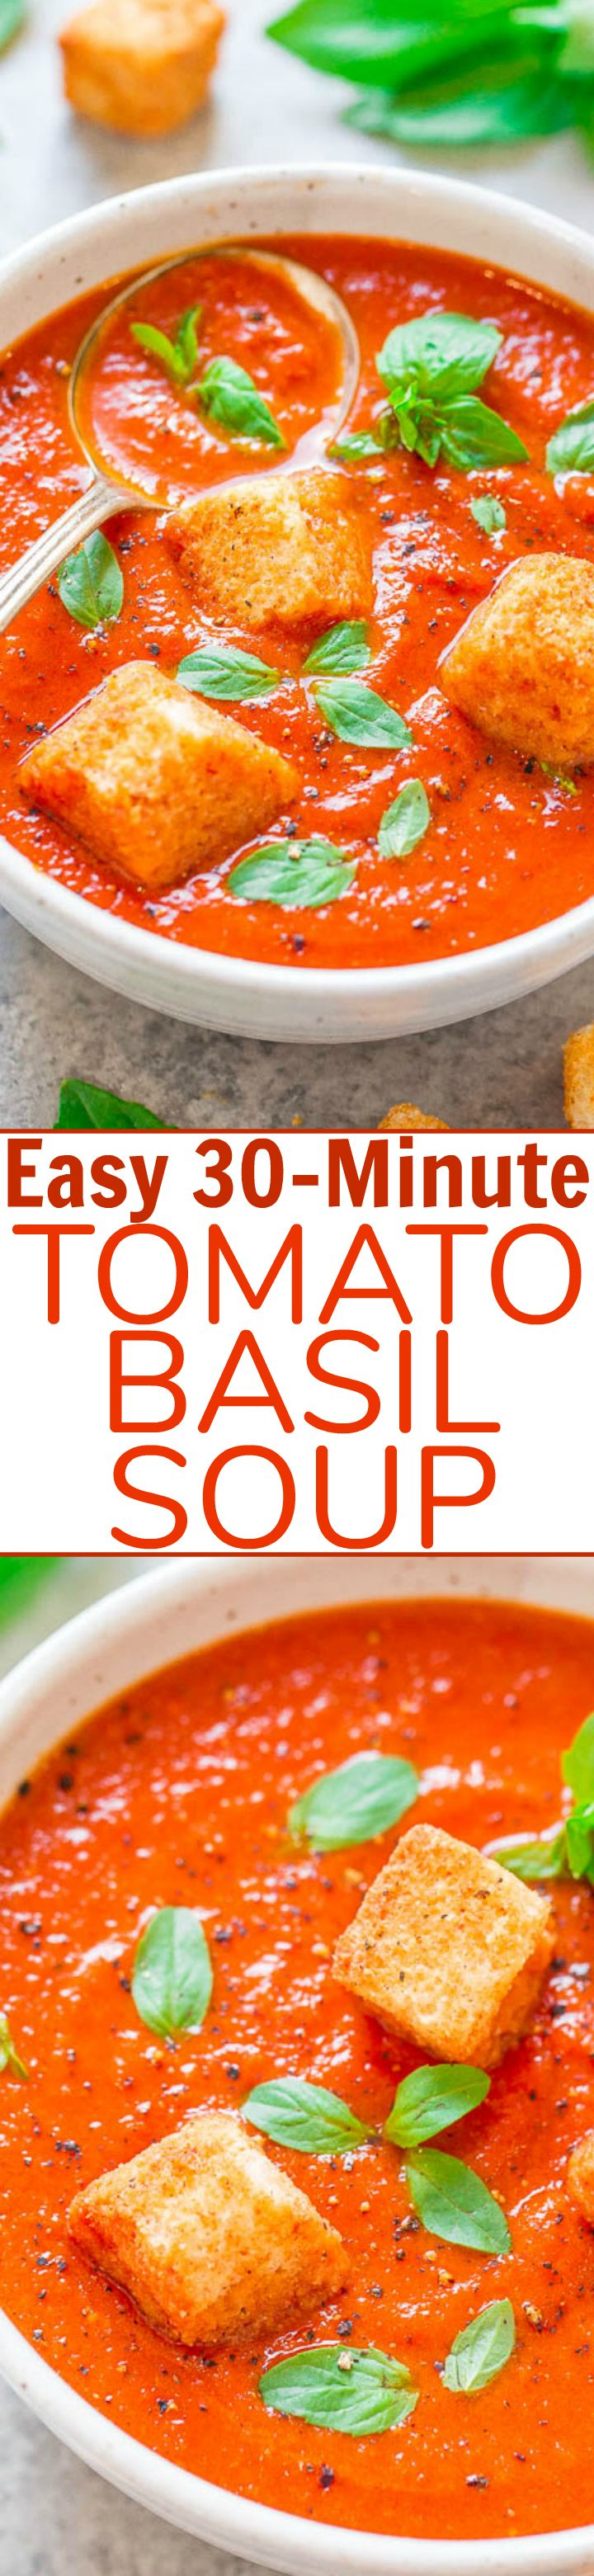 Easy 30-Minute Tomato Basil Soup - Hearty yet HEALTHY, fast, easy, and loaded with great tomato-basil flavor!! The perfect soup to warm you up and keep you satisfied! Great for easy lunches and busy weeknights!!